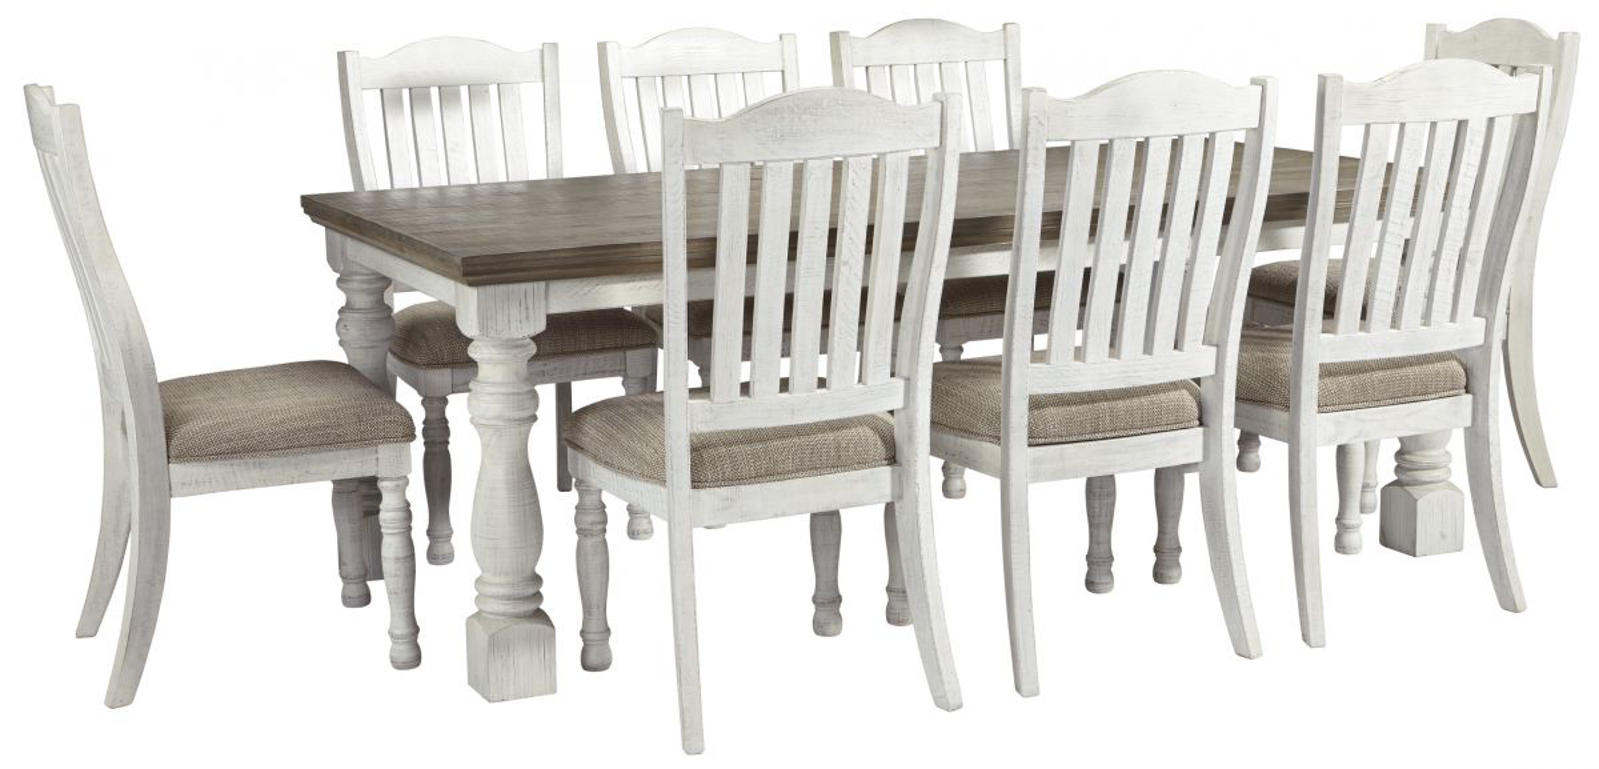 Picture of Havalance Table & 8 Chairs